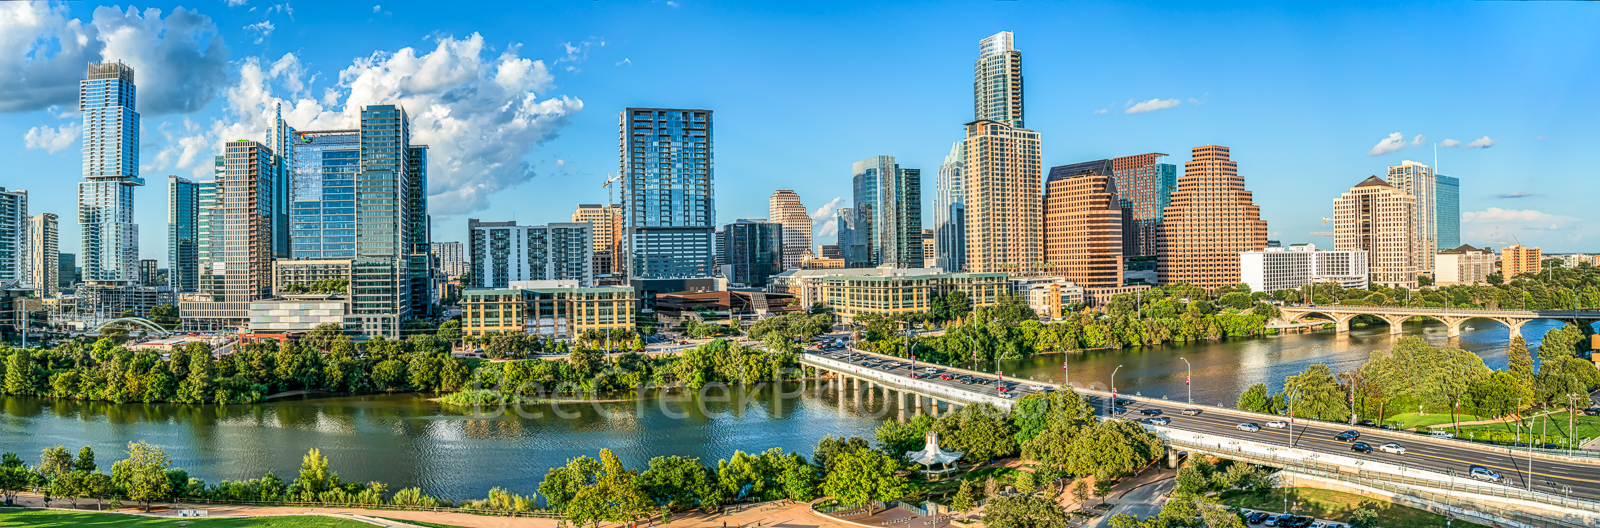 Aerial Austin Skyline, Austin, skyline, aerial, lady bird lake, hike and bike trail, cityscape, water, pano, panorama, tallest building, Independent, Jingle, Google, Northshore Condos, W, building, ci, photo